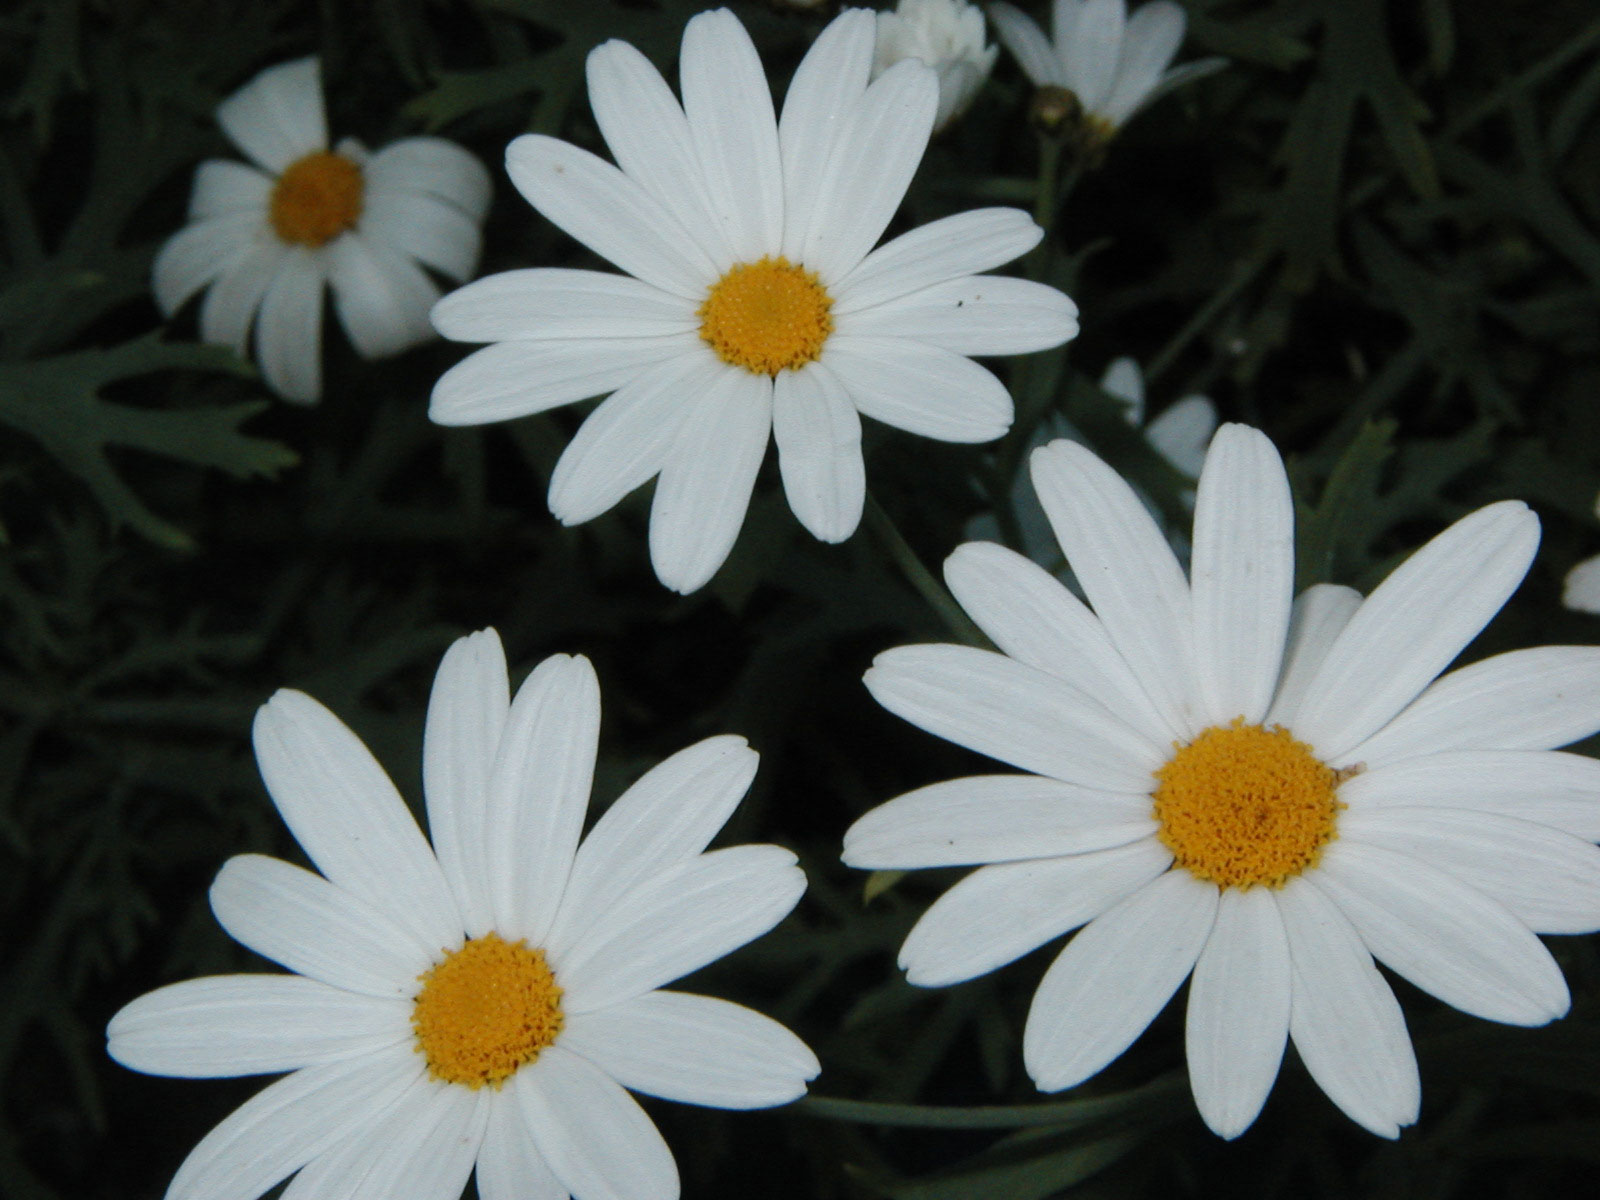 3 White flowers, Bloom, Flower, Orange, White, HQ Photo